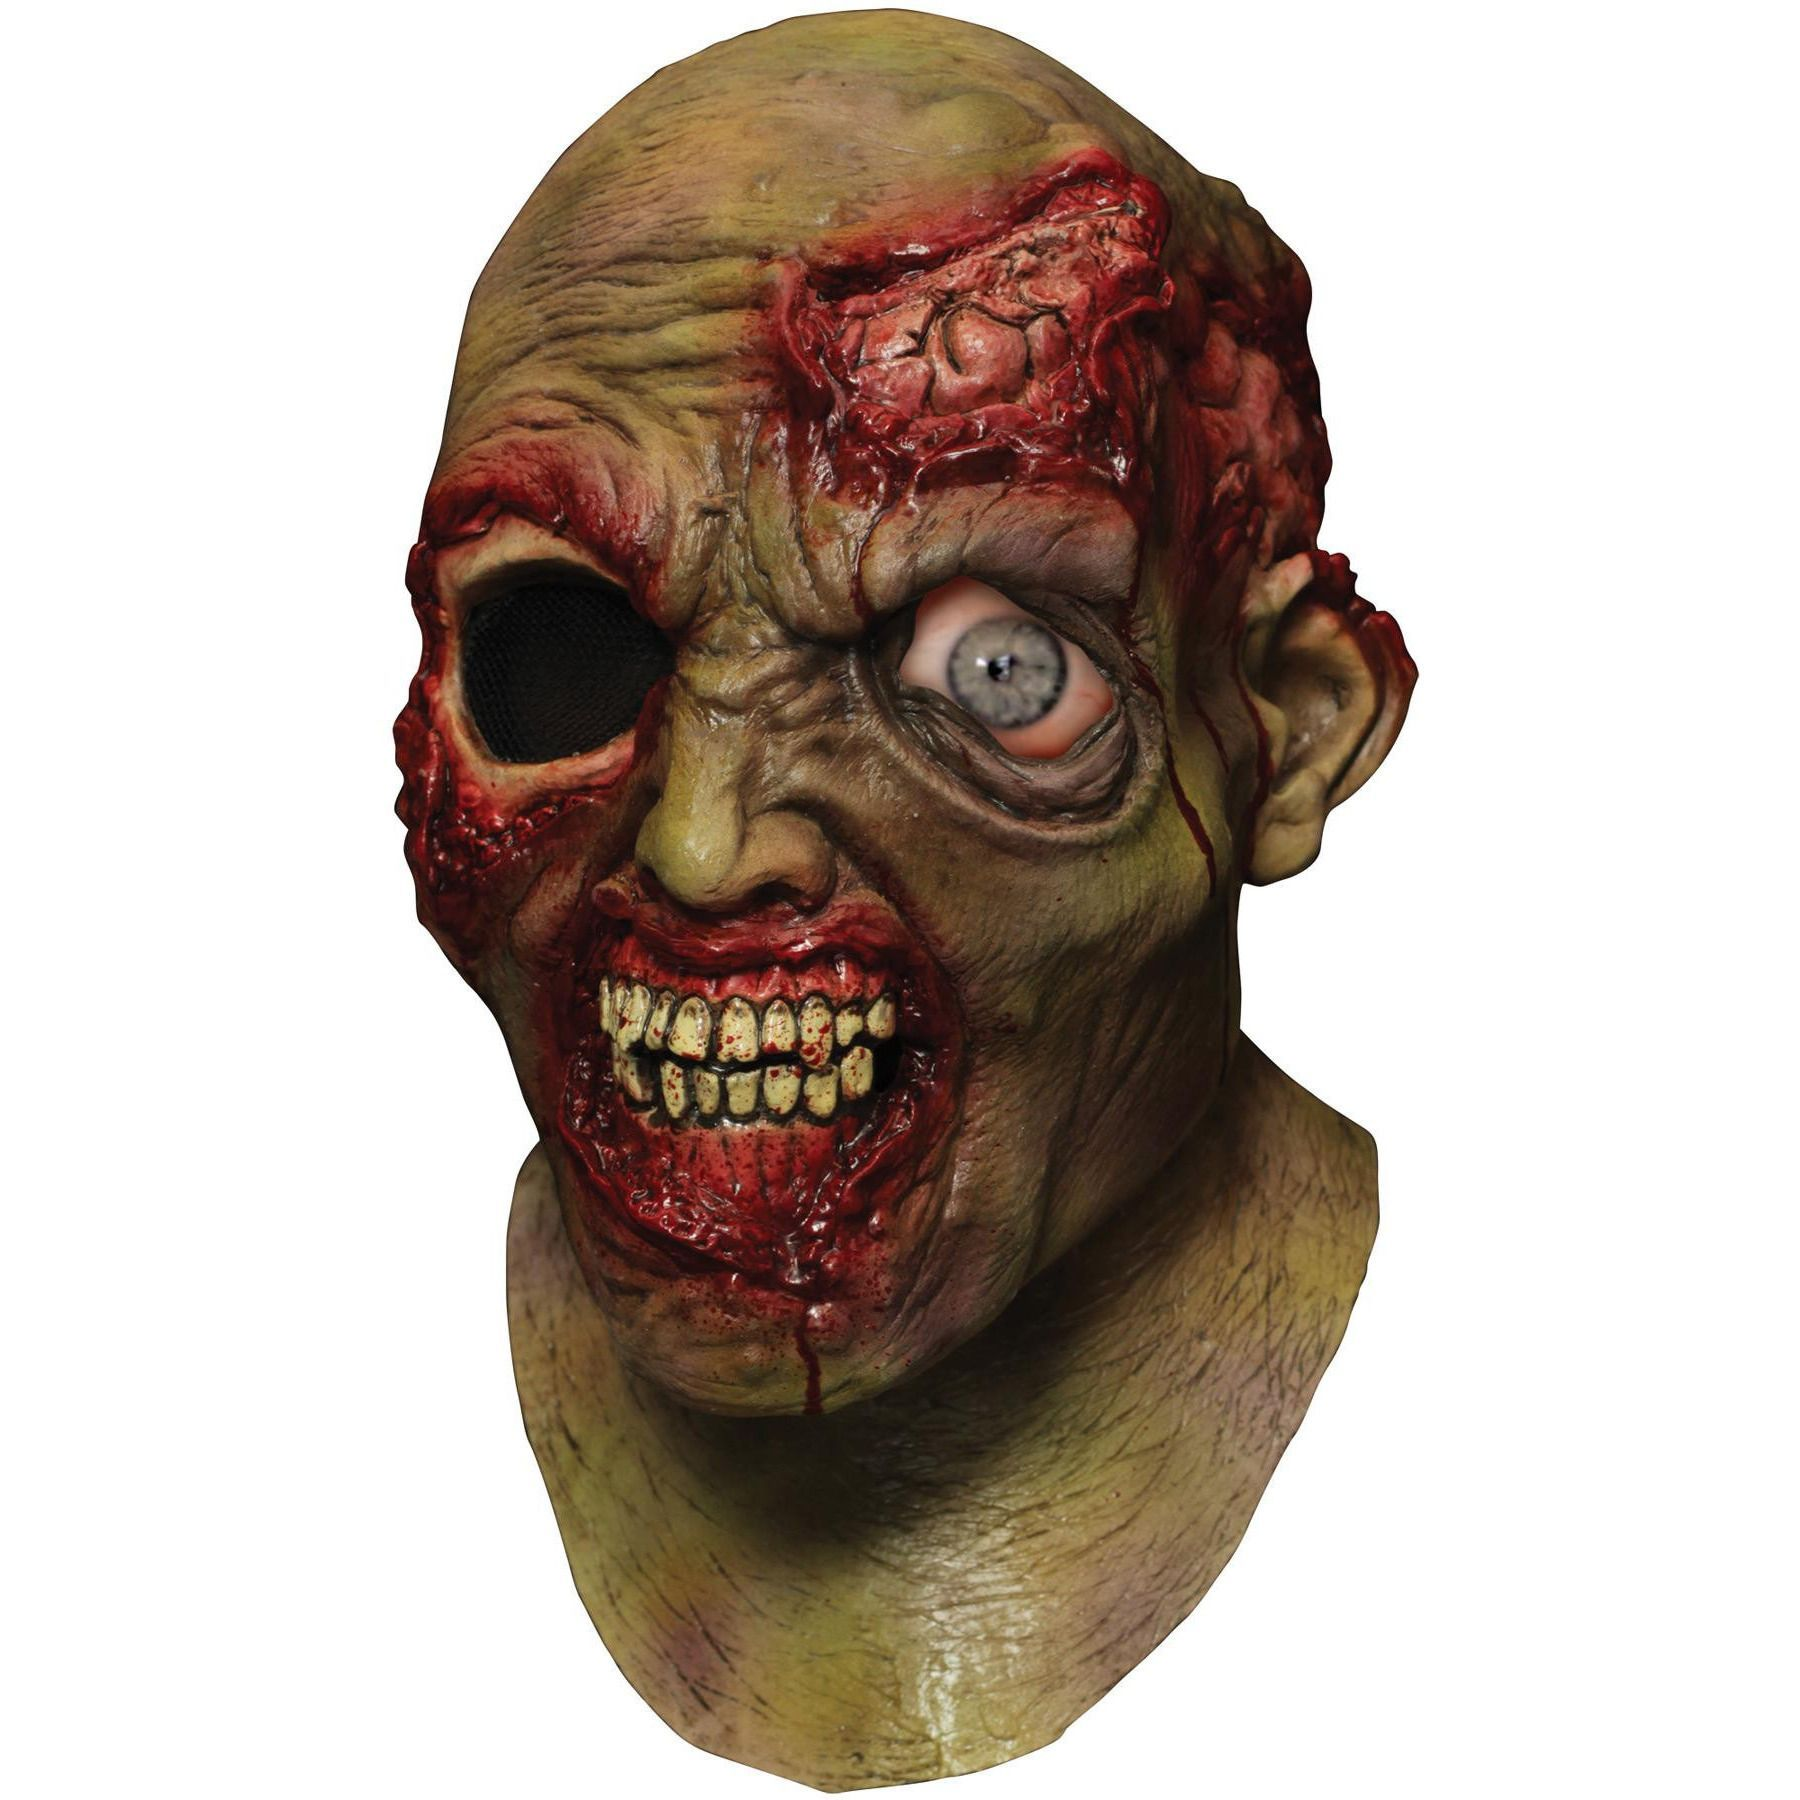 Wanderin Eye Zombie Digital | Products, Zombies and Eyes